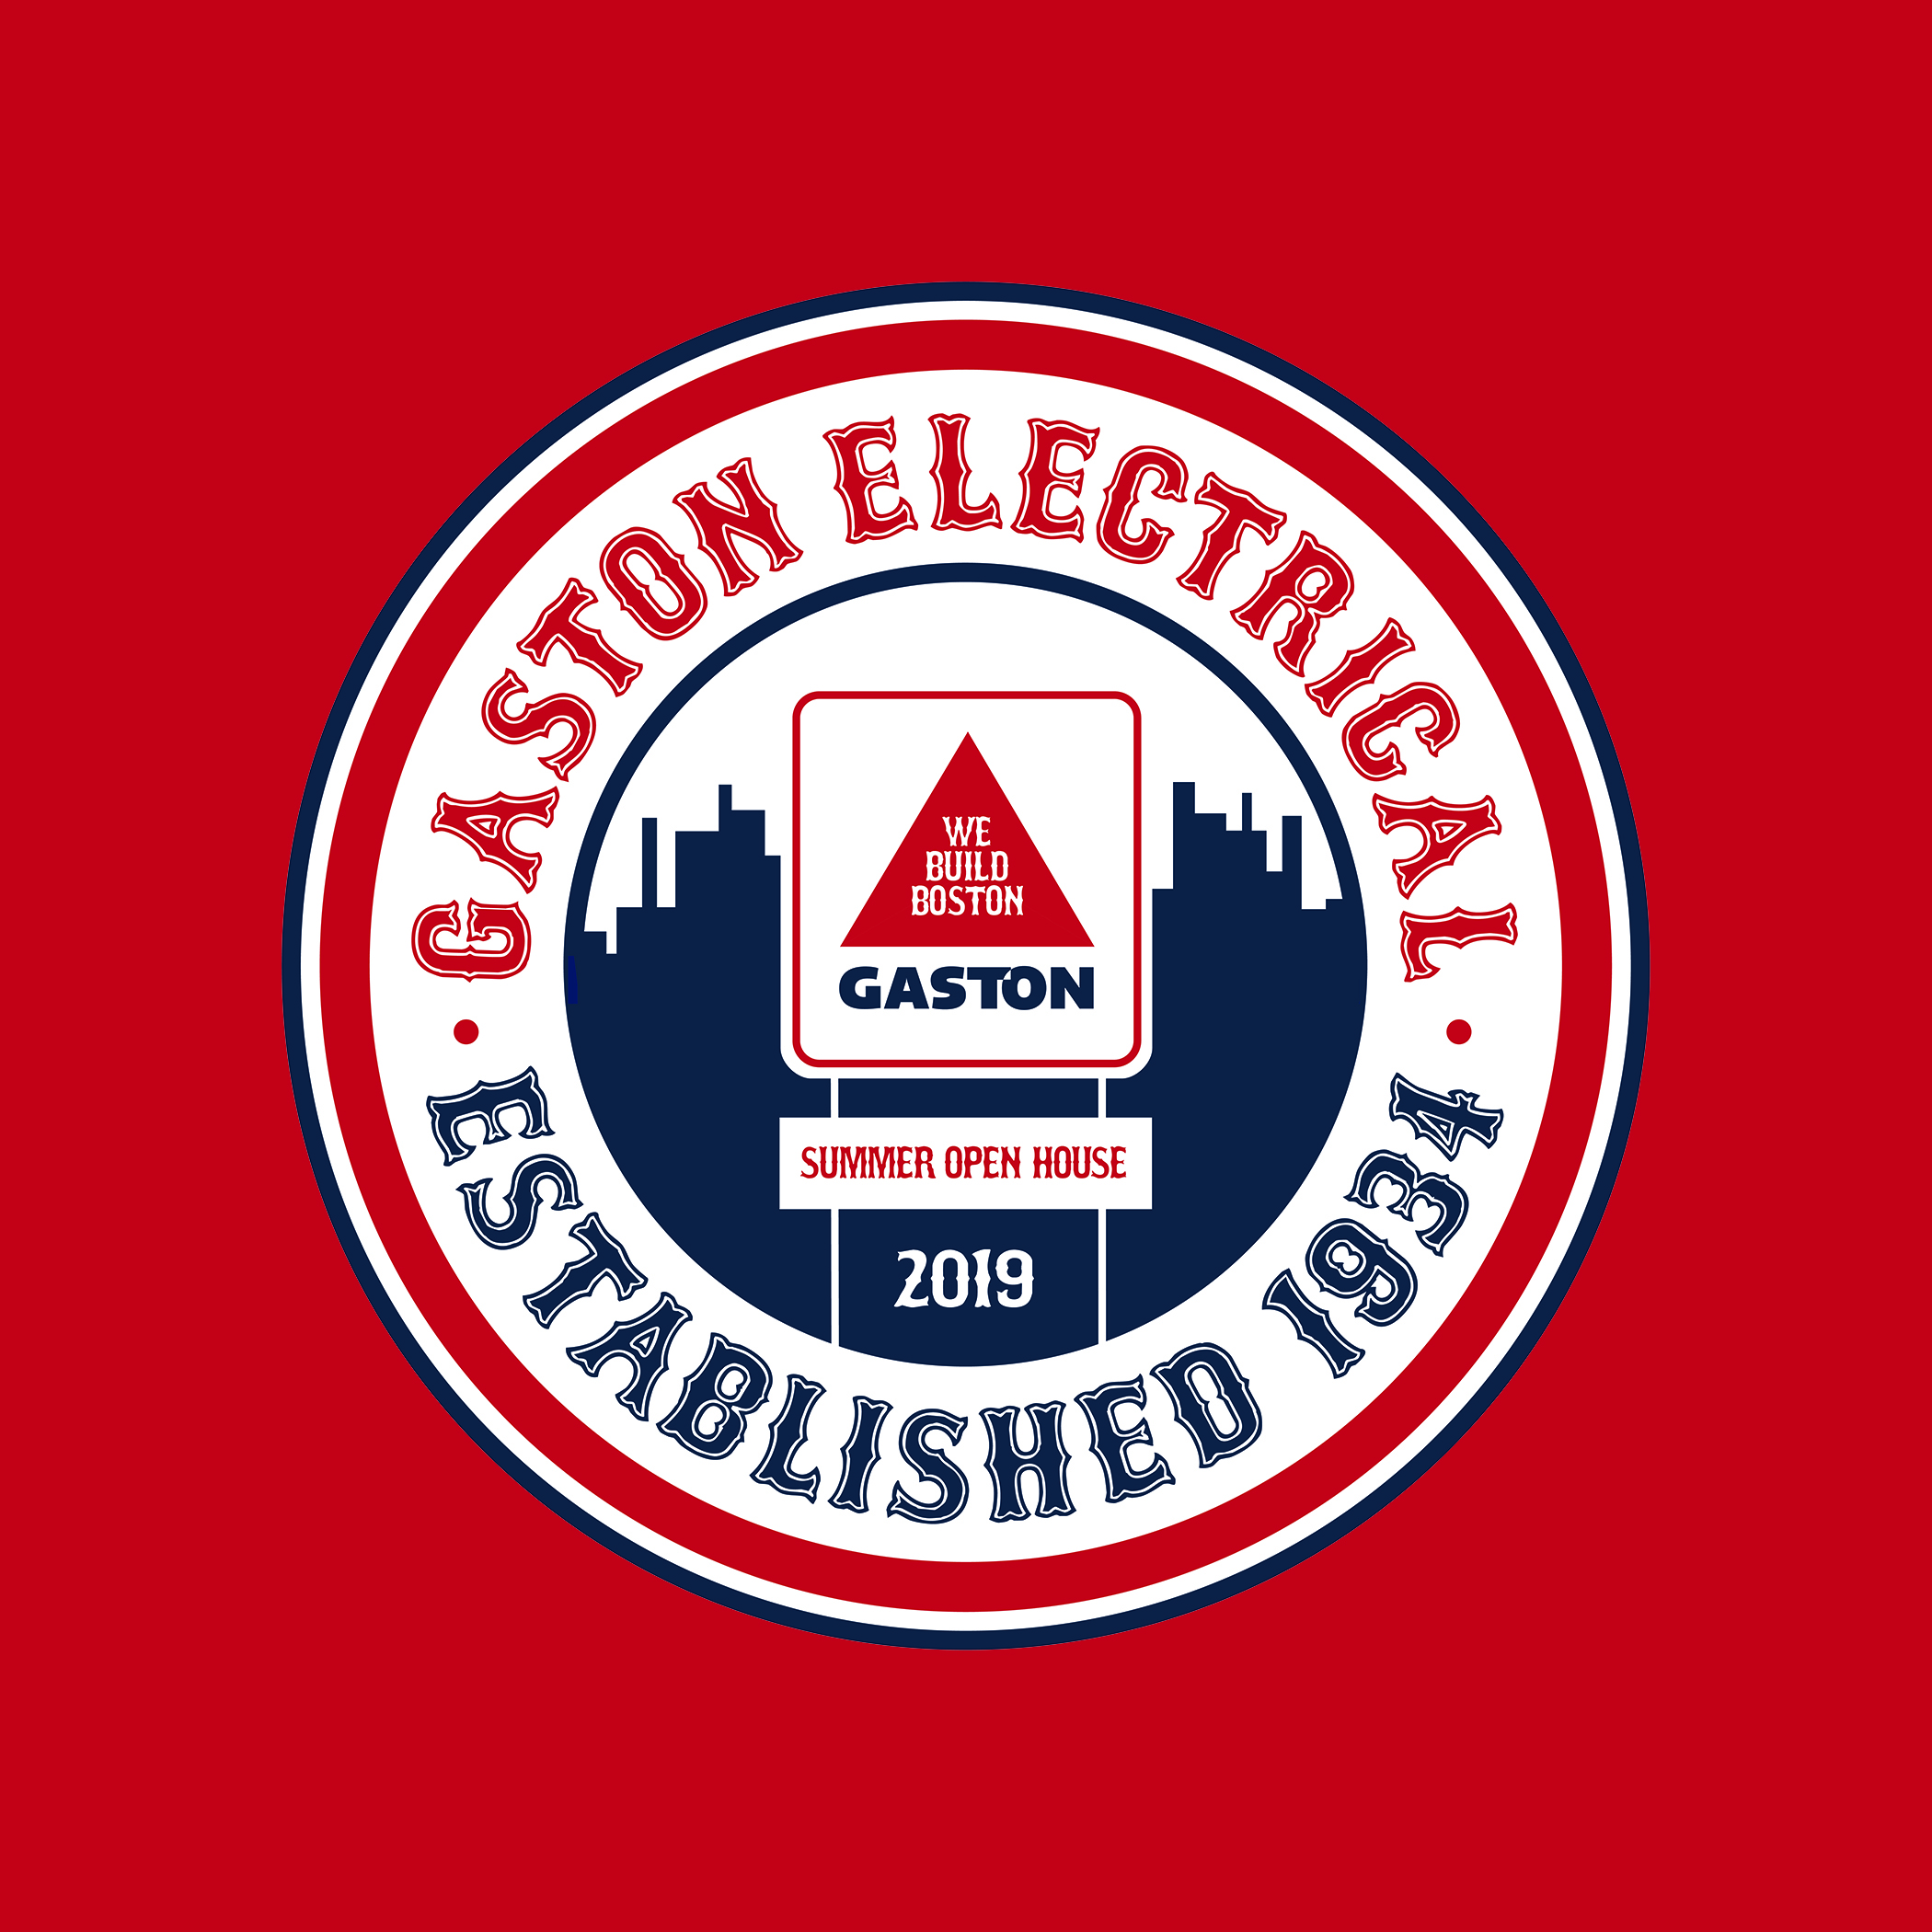 Gaston Electrical Summer Open House Logo